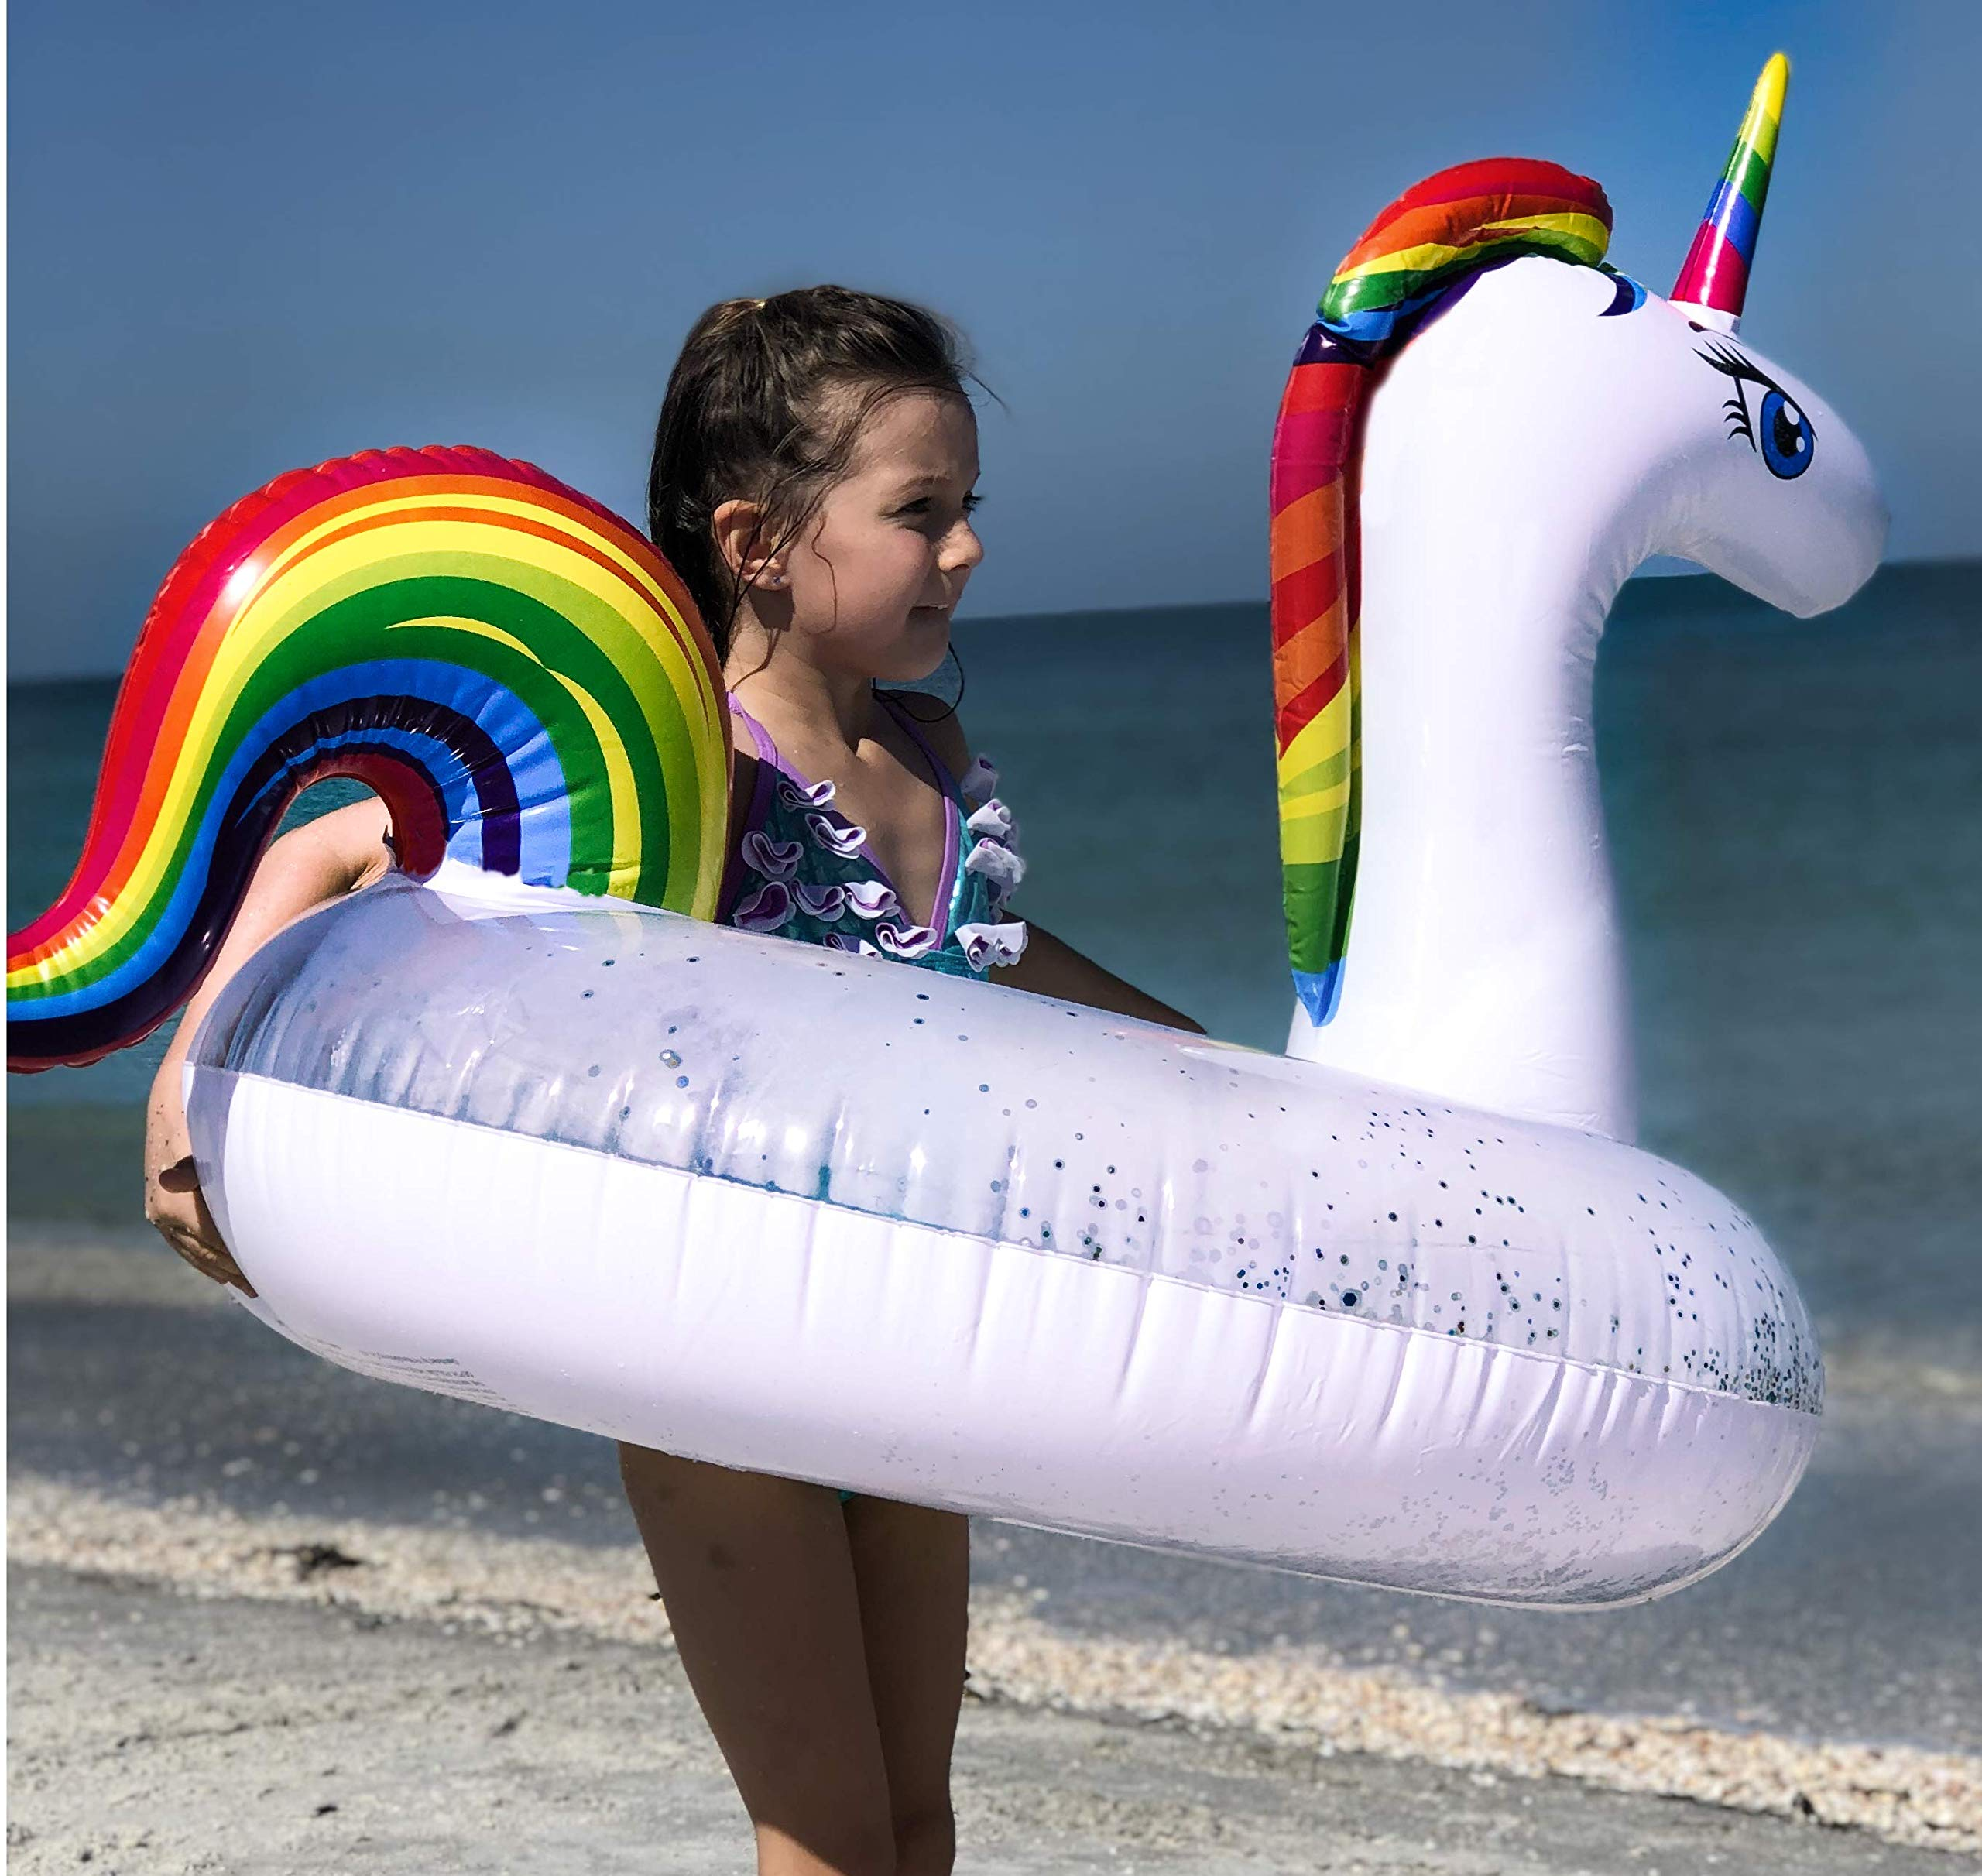 Unicorn Pool Floats for Kids - Glitter Filled - Ride ON Inflatable Unicorn Float for Pool Lake River RAFT - Giant… 7